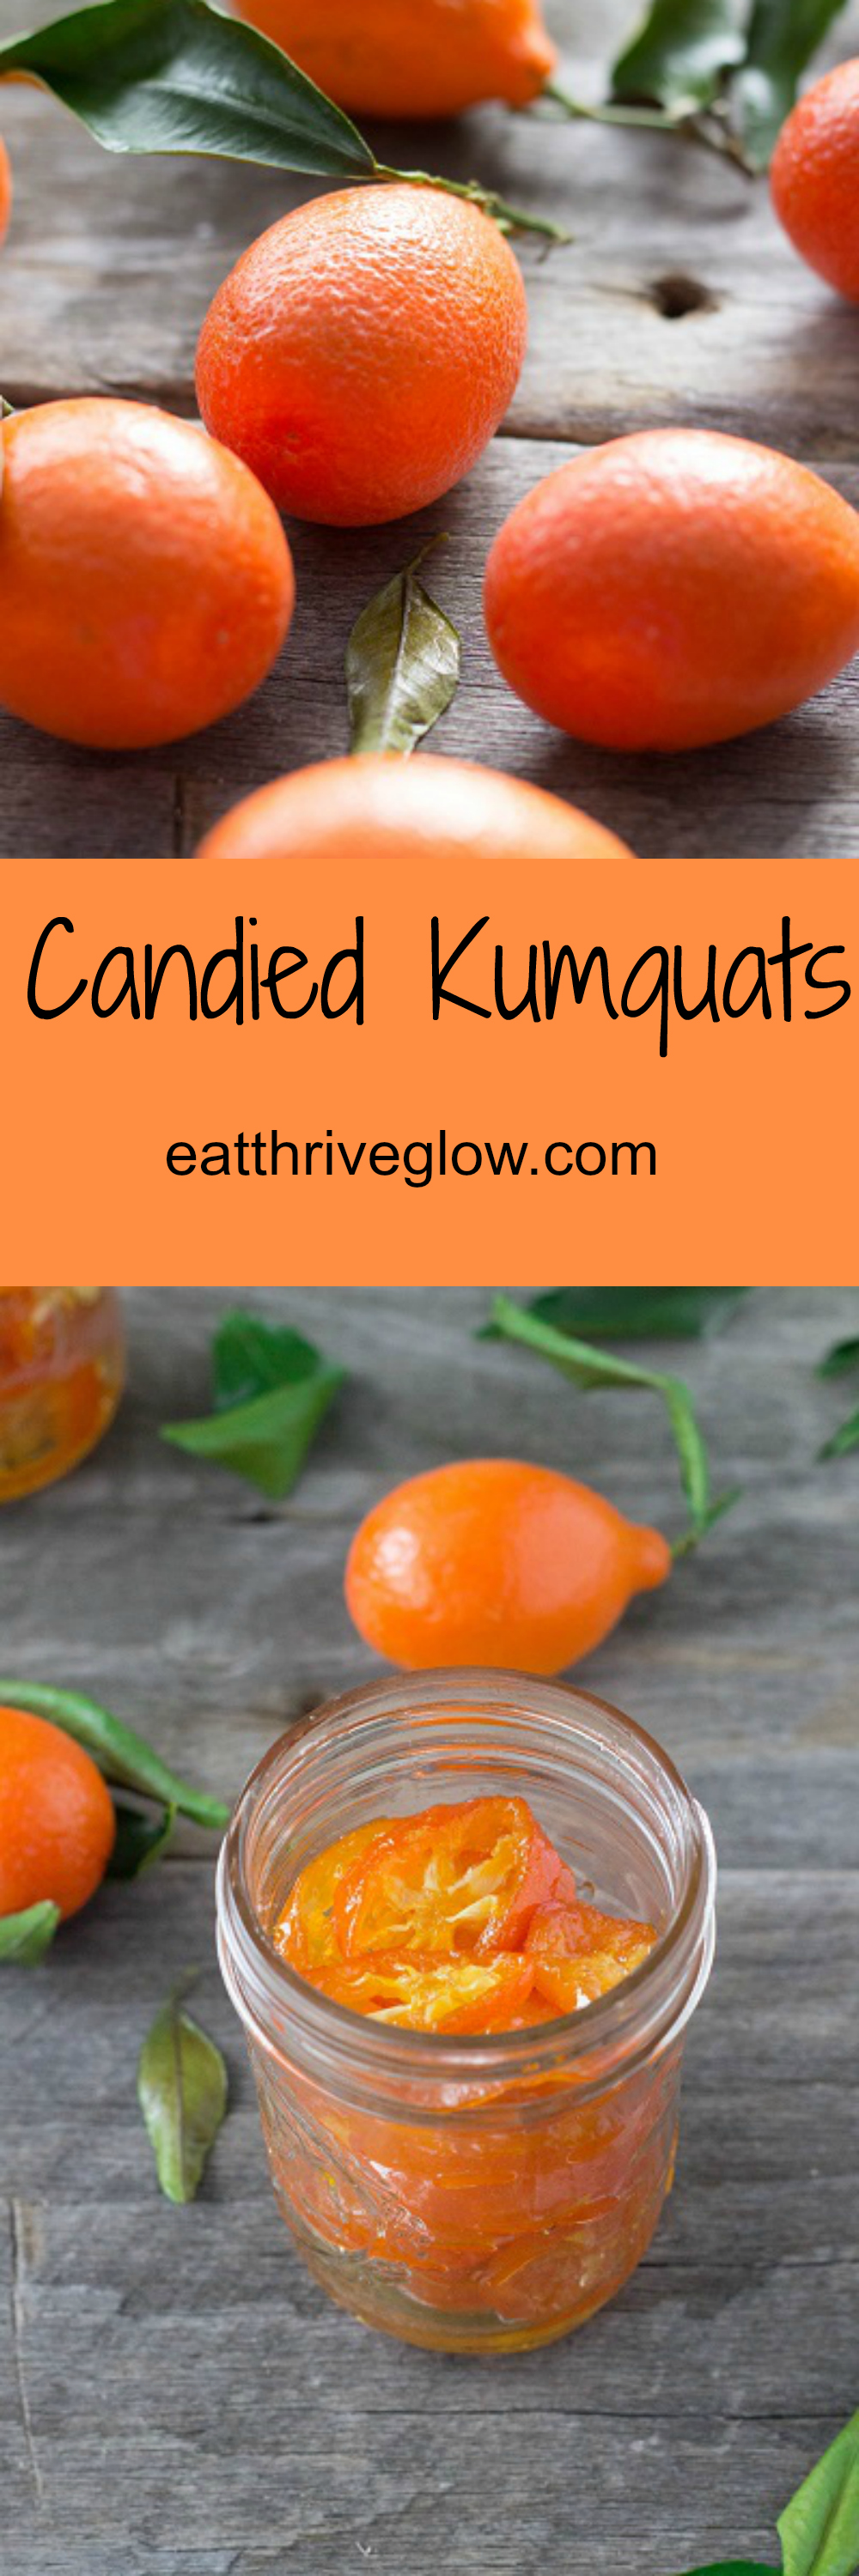 Candied Kumquats - Eat Thrive Glow